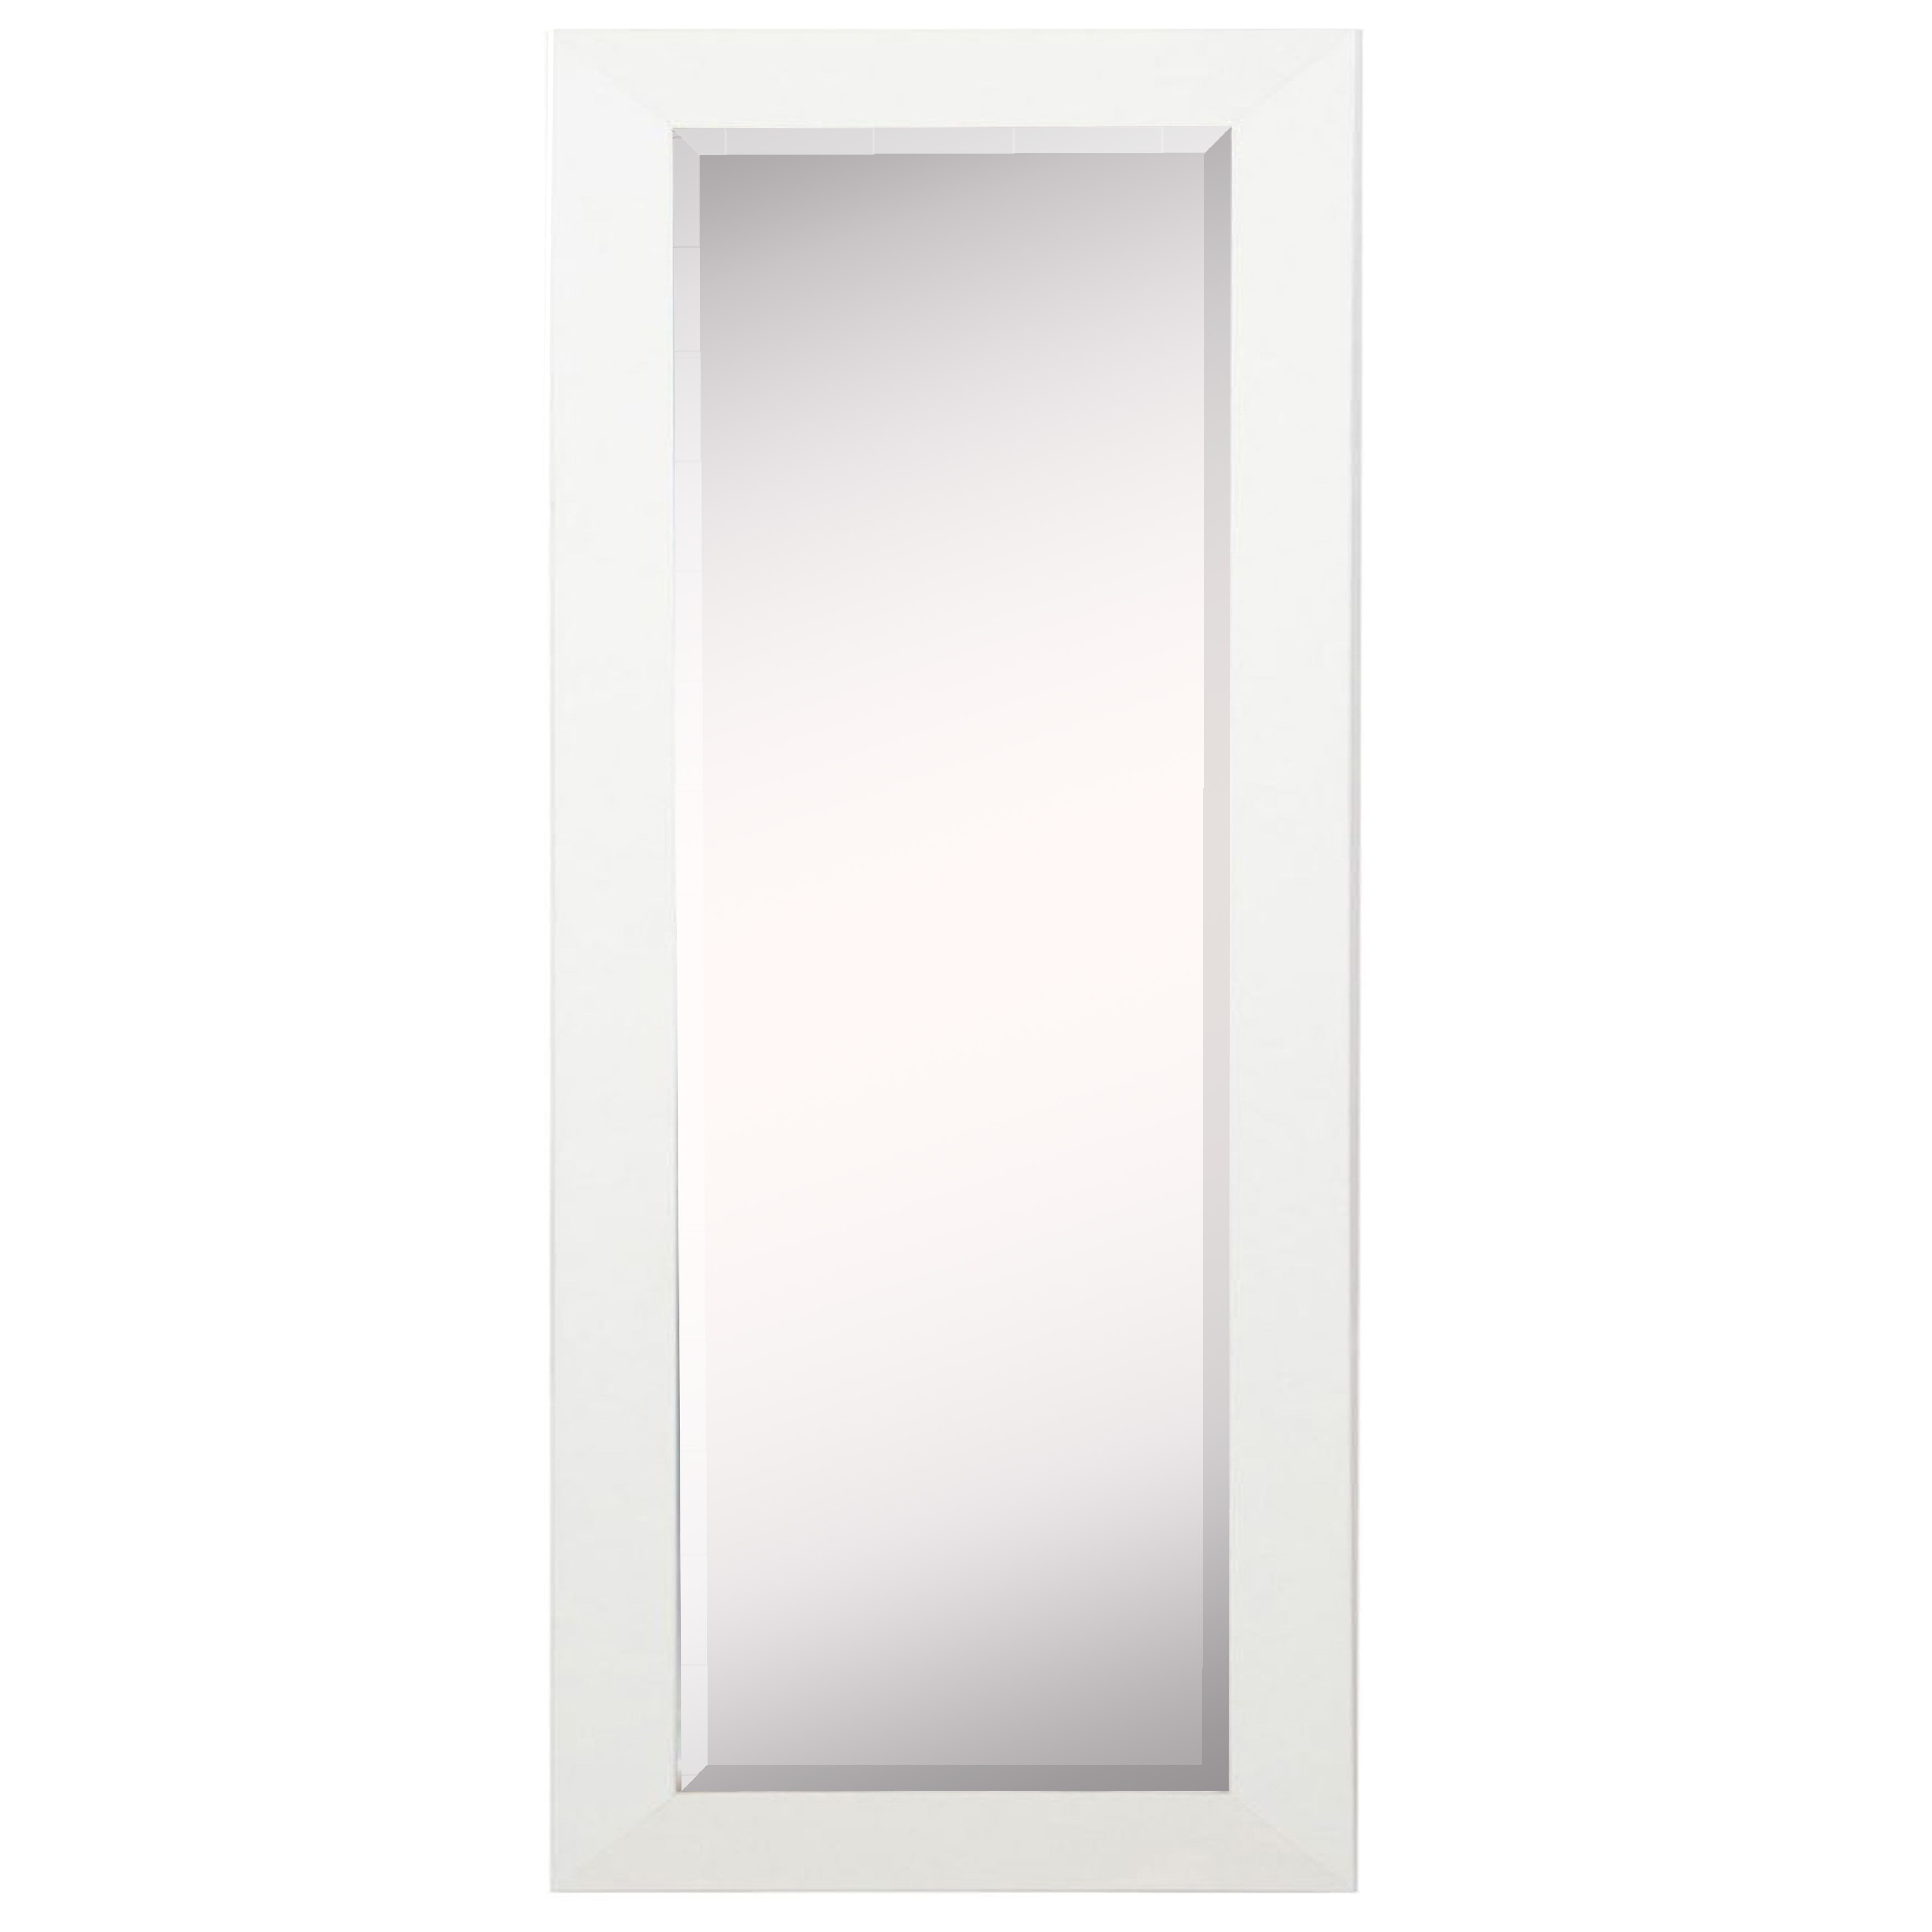 Latest Rayne Mirrors White Satin Full Length Body Wall Mirror With Full Body Wall Mirrors (Gallery 3 of 20)